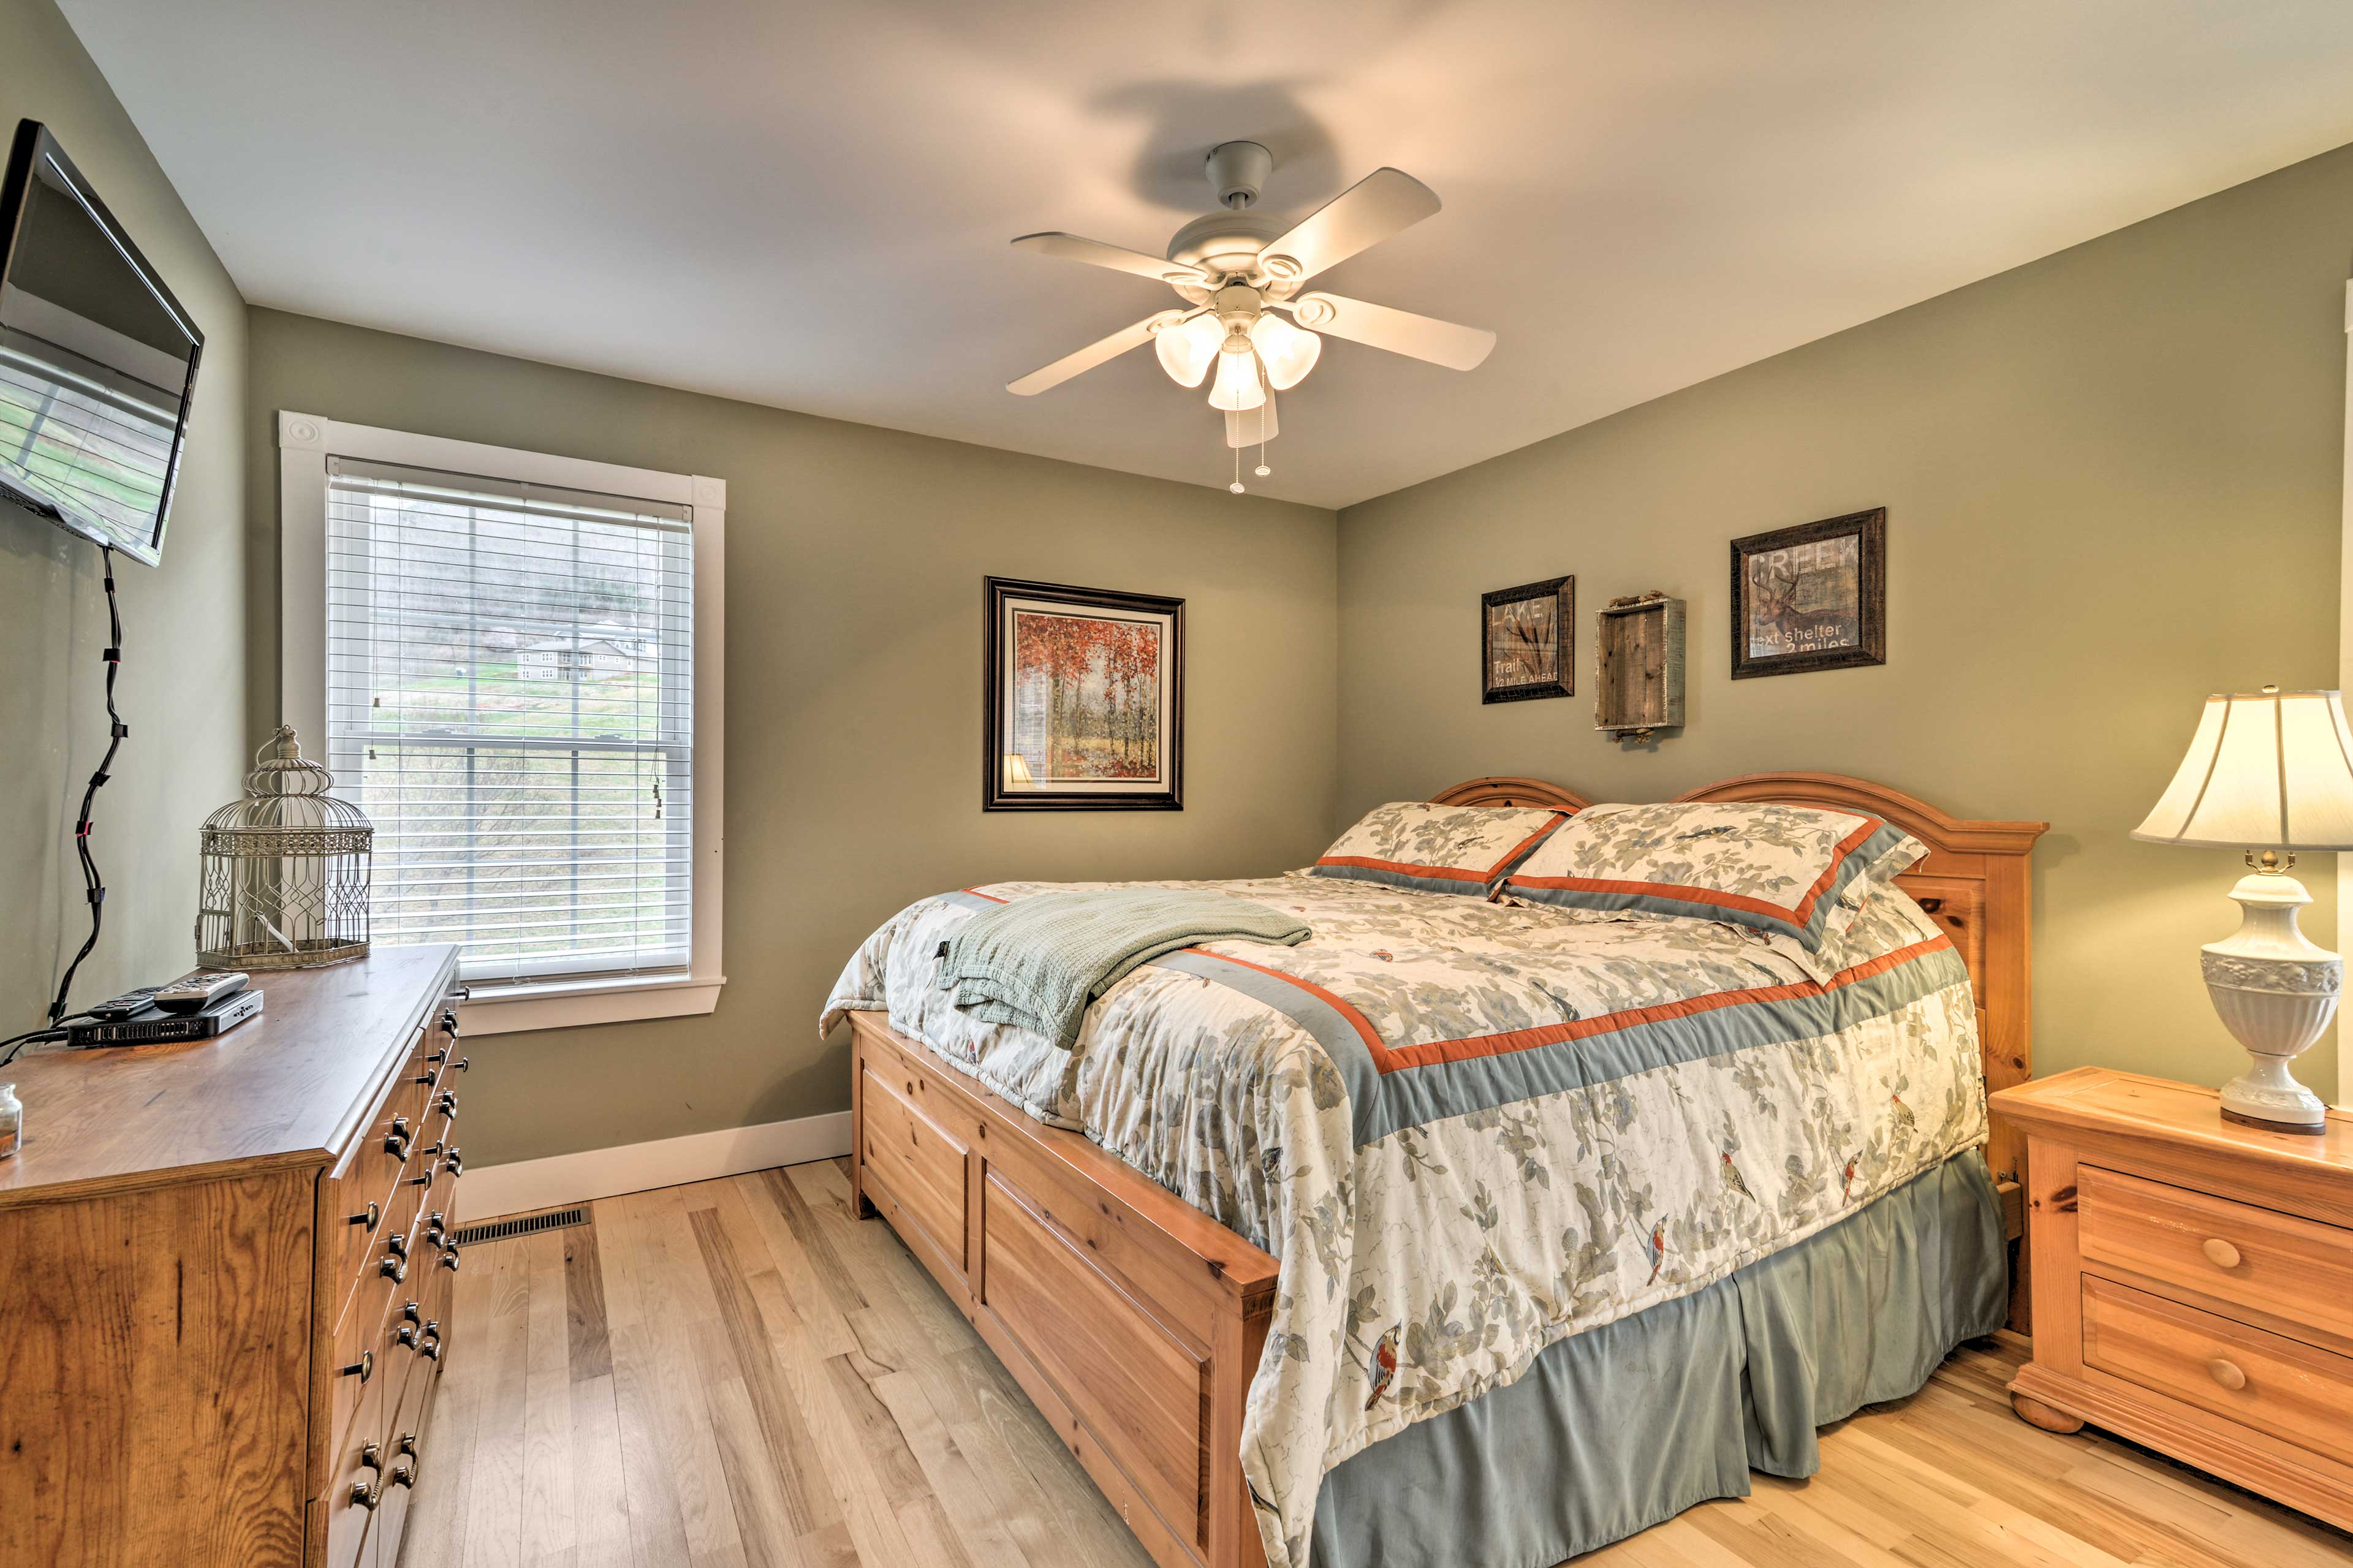 Sweet dreams! This bedroom also hosts a king bed.